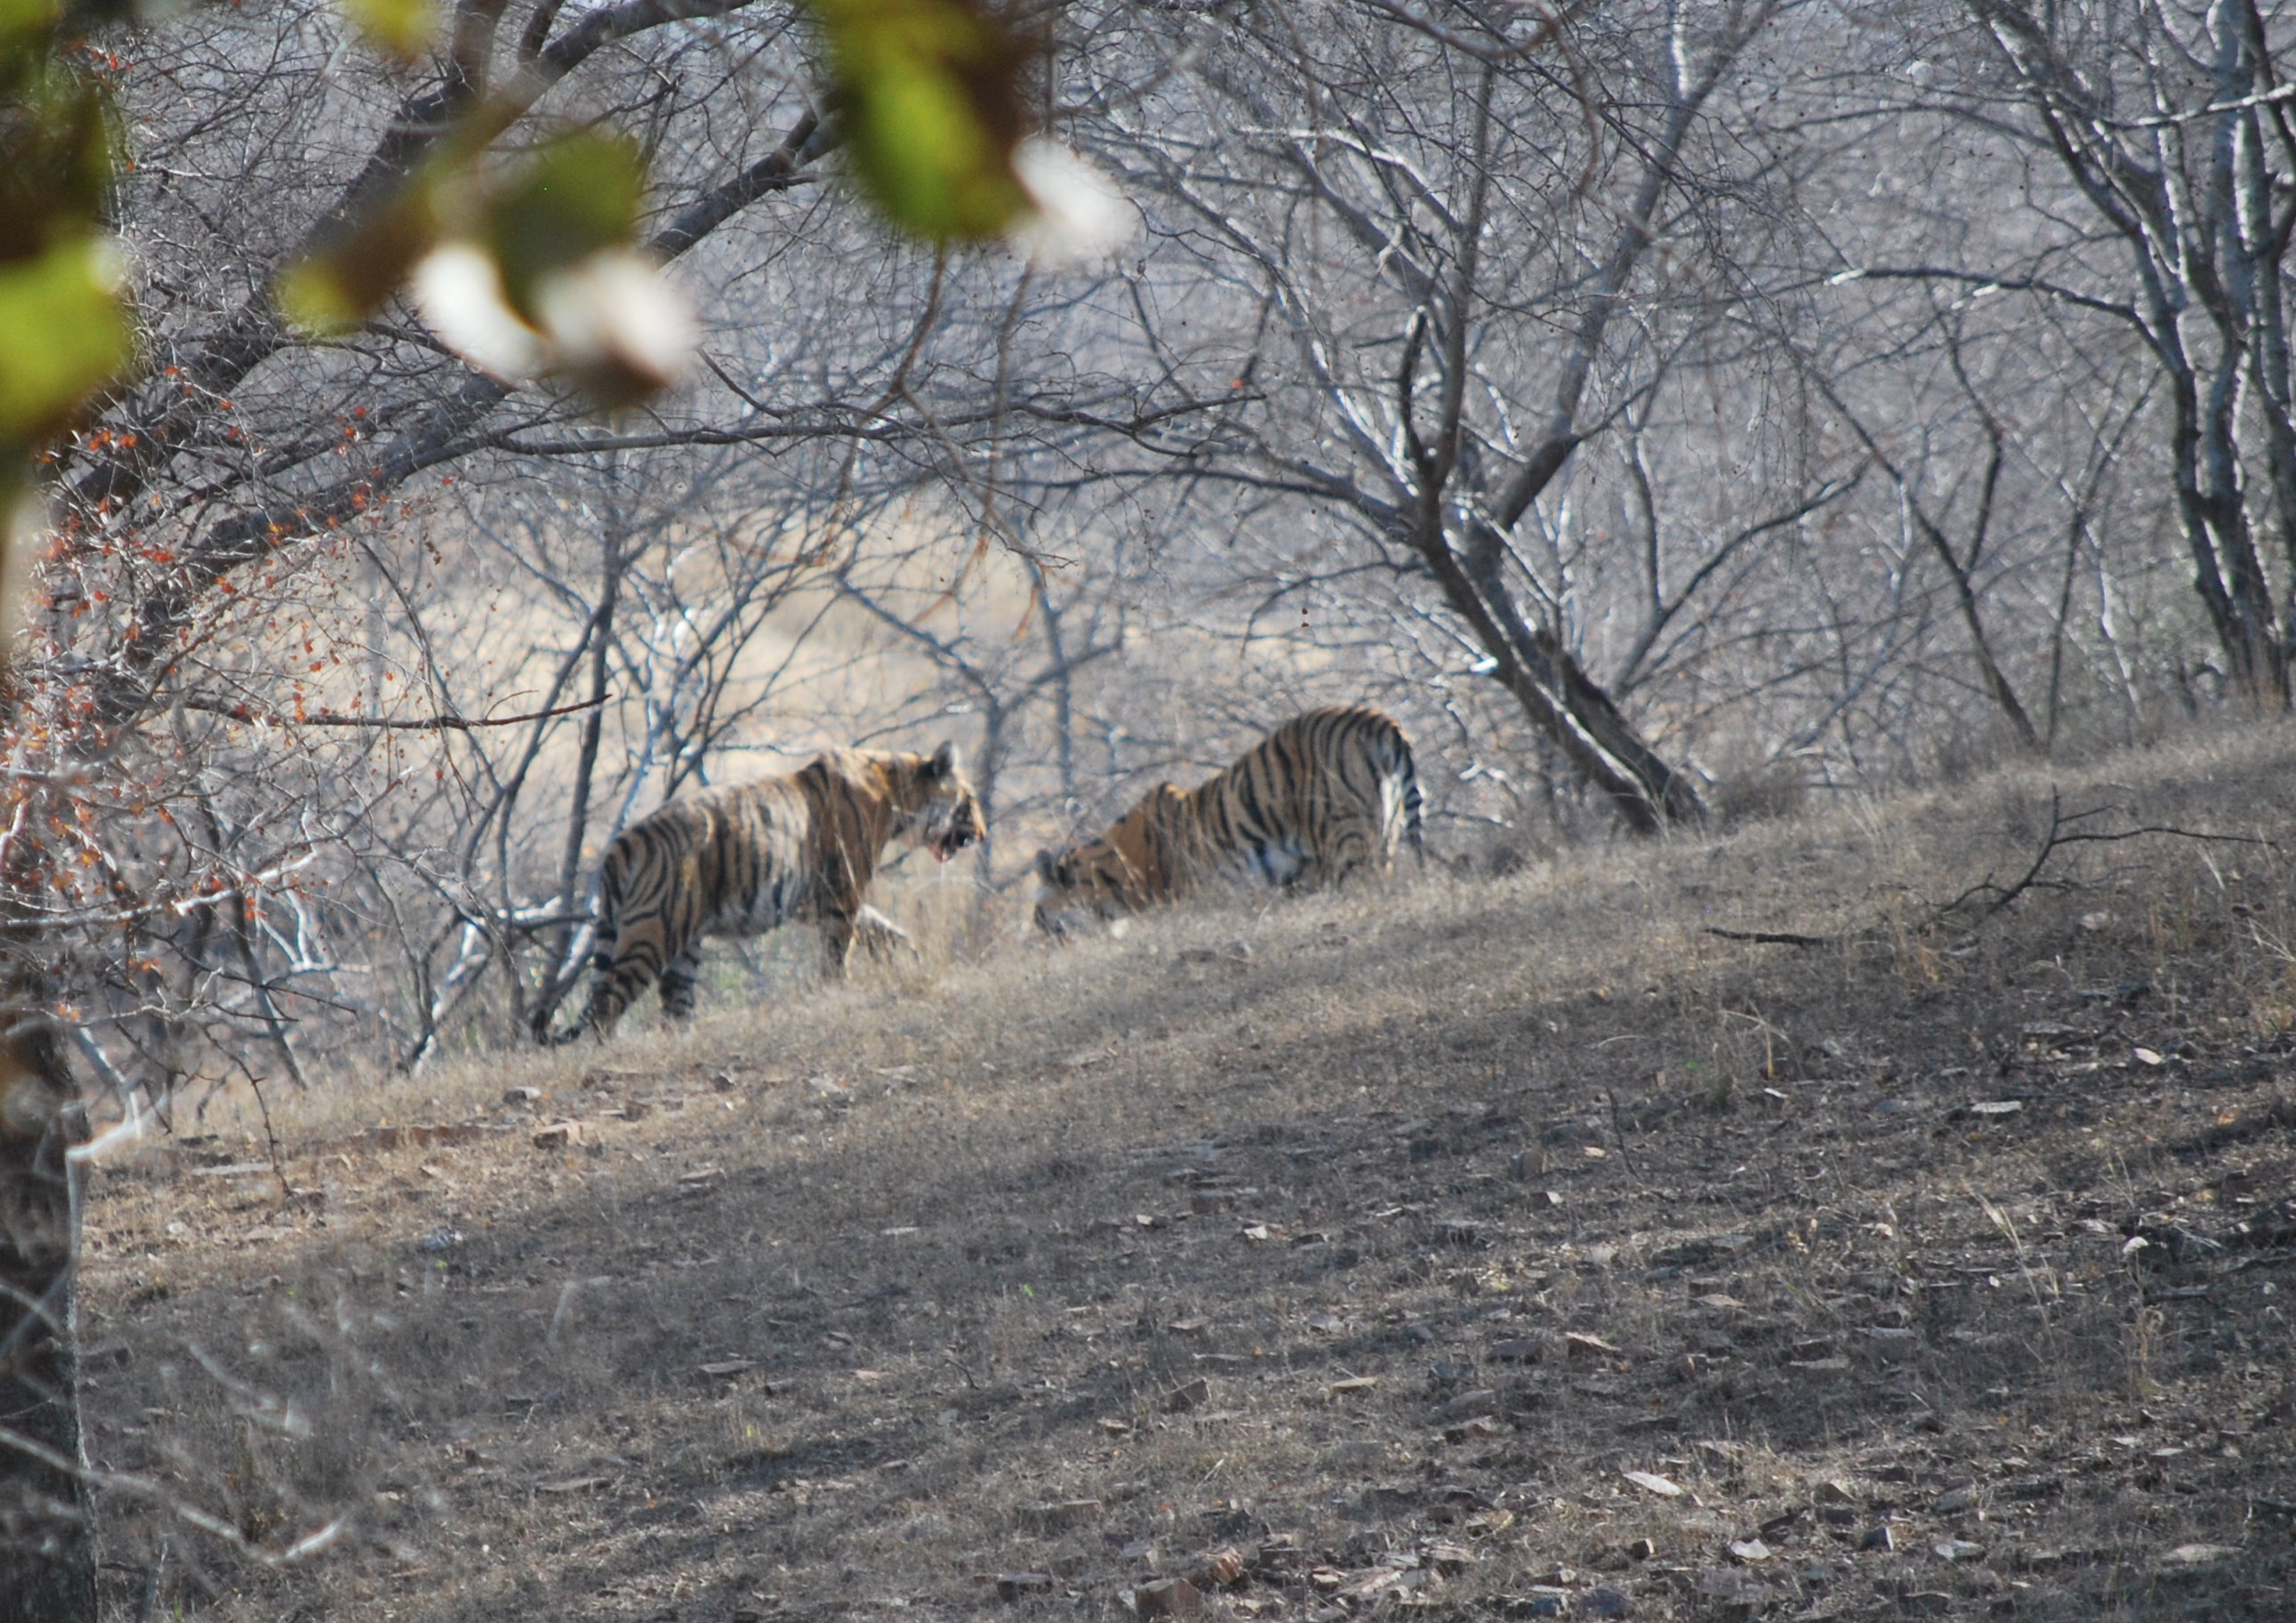 tigers in Ranthambhore